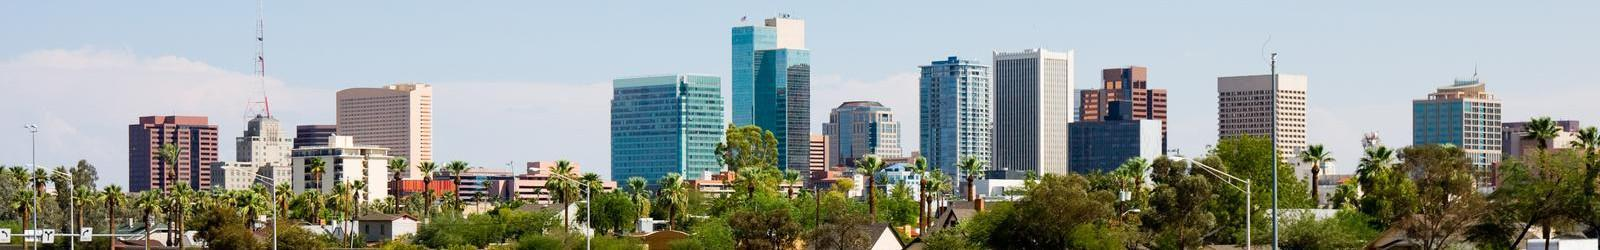 Therapists in Phoenix, Arizona: psychologists, counselors, and mental health specialists